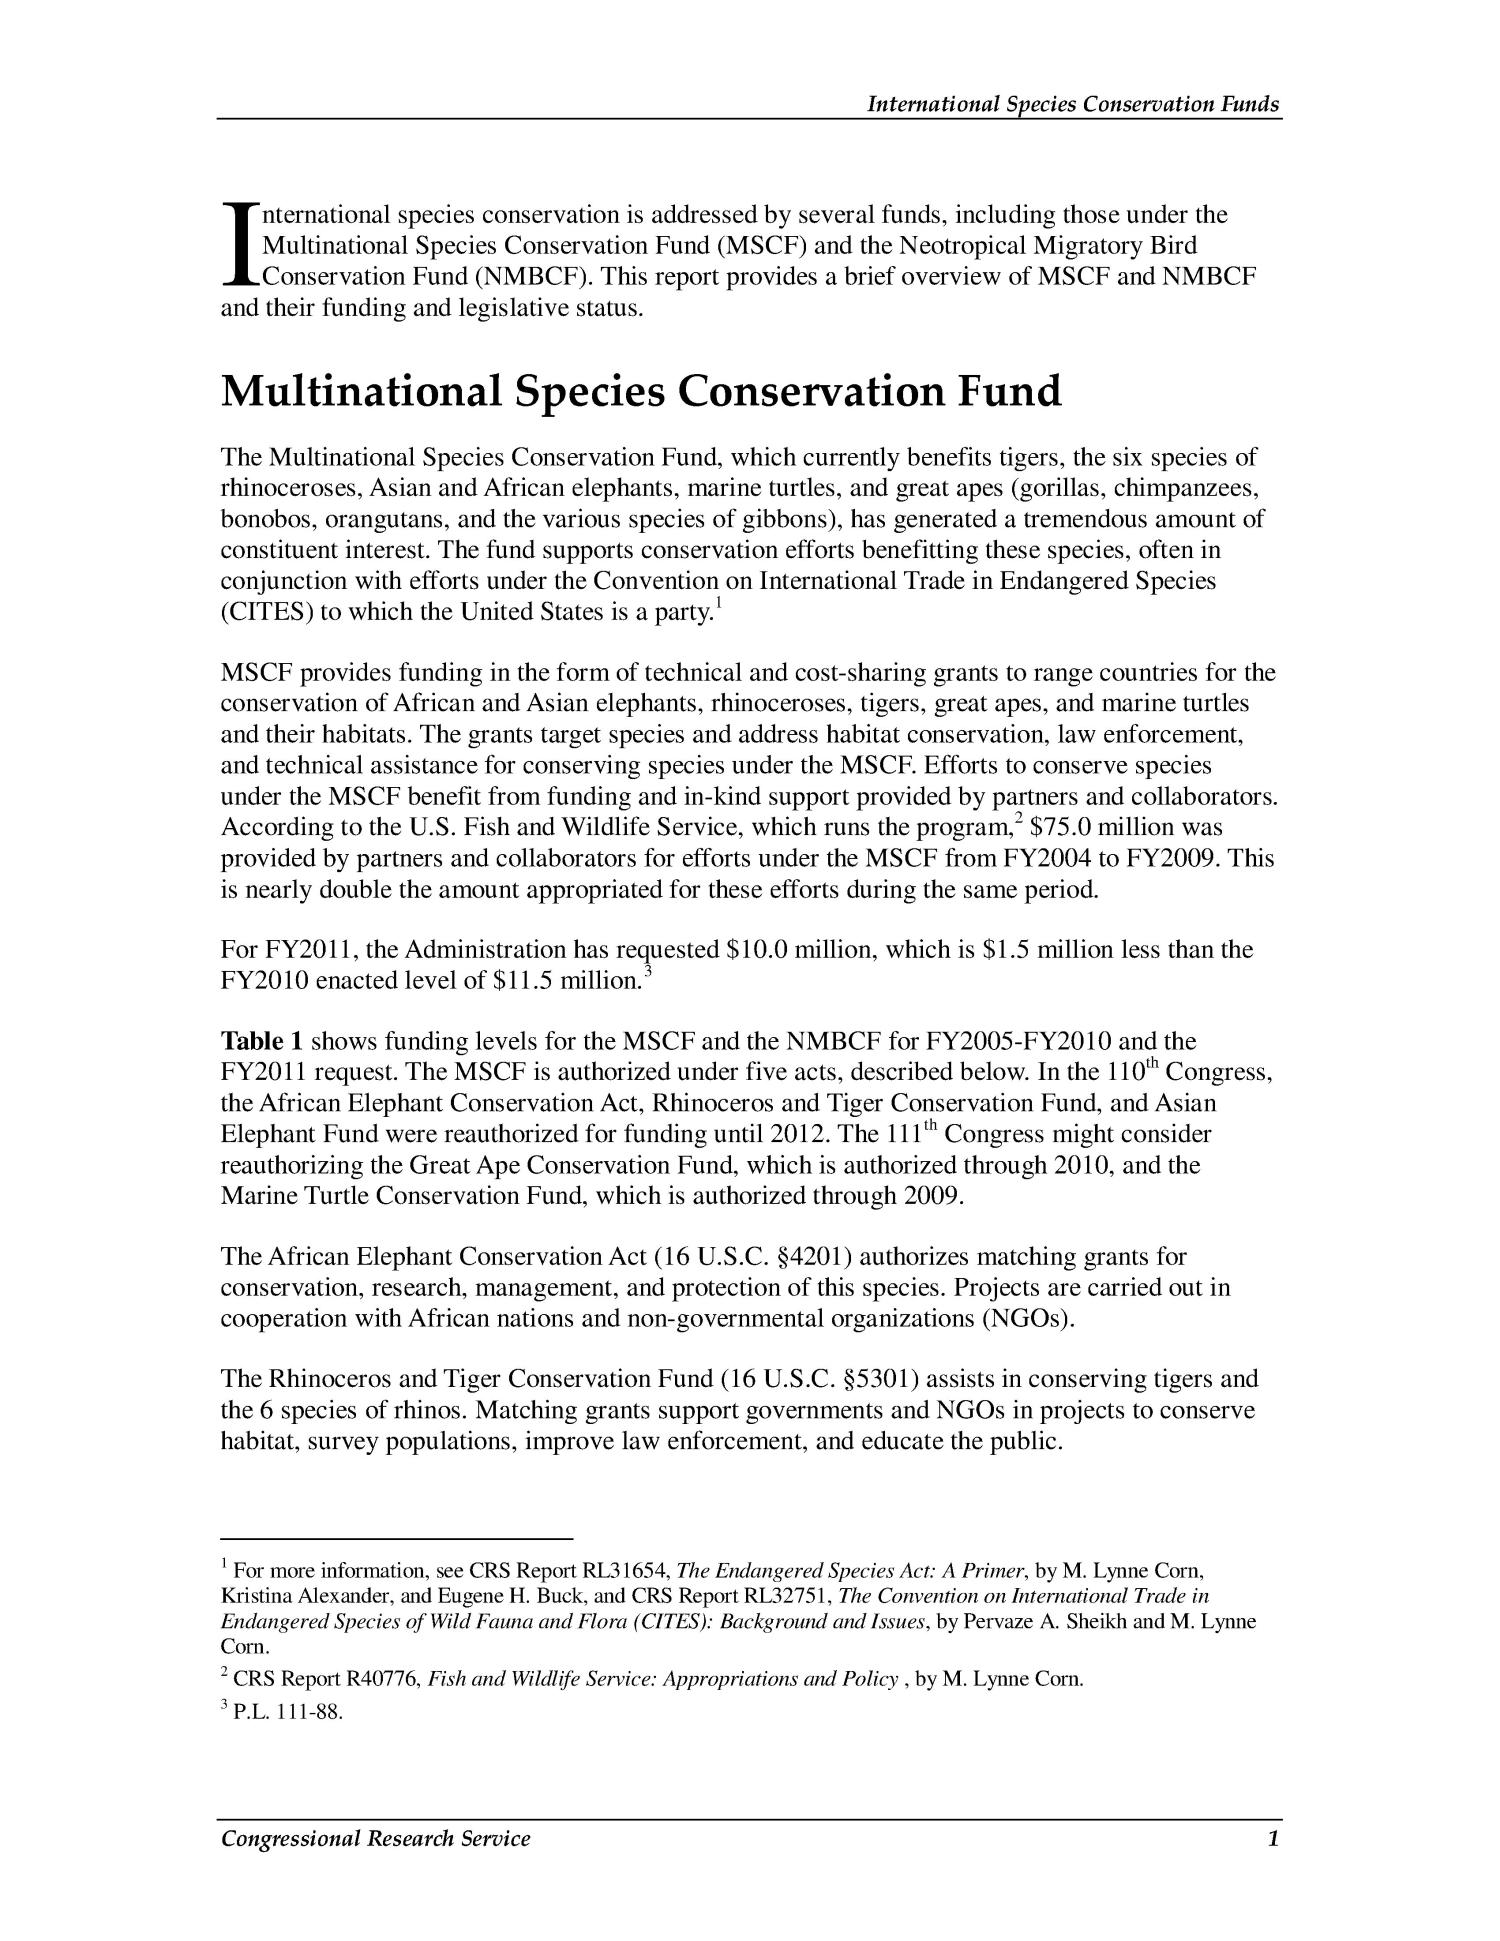 International Species Conservation Funds                                                                                                      [Sequence #]: 4 of 7